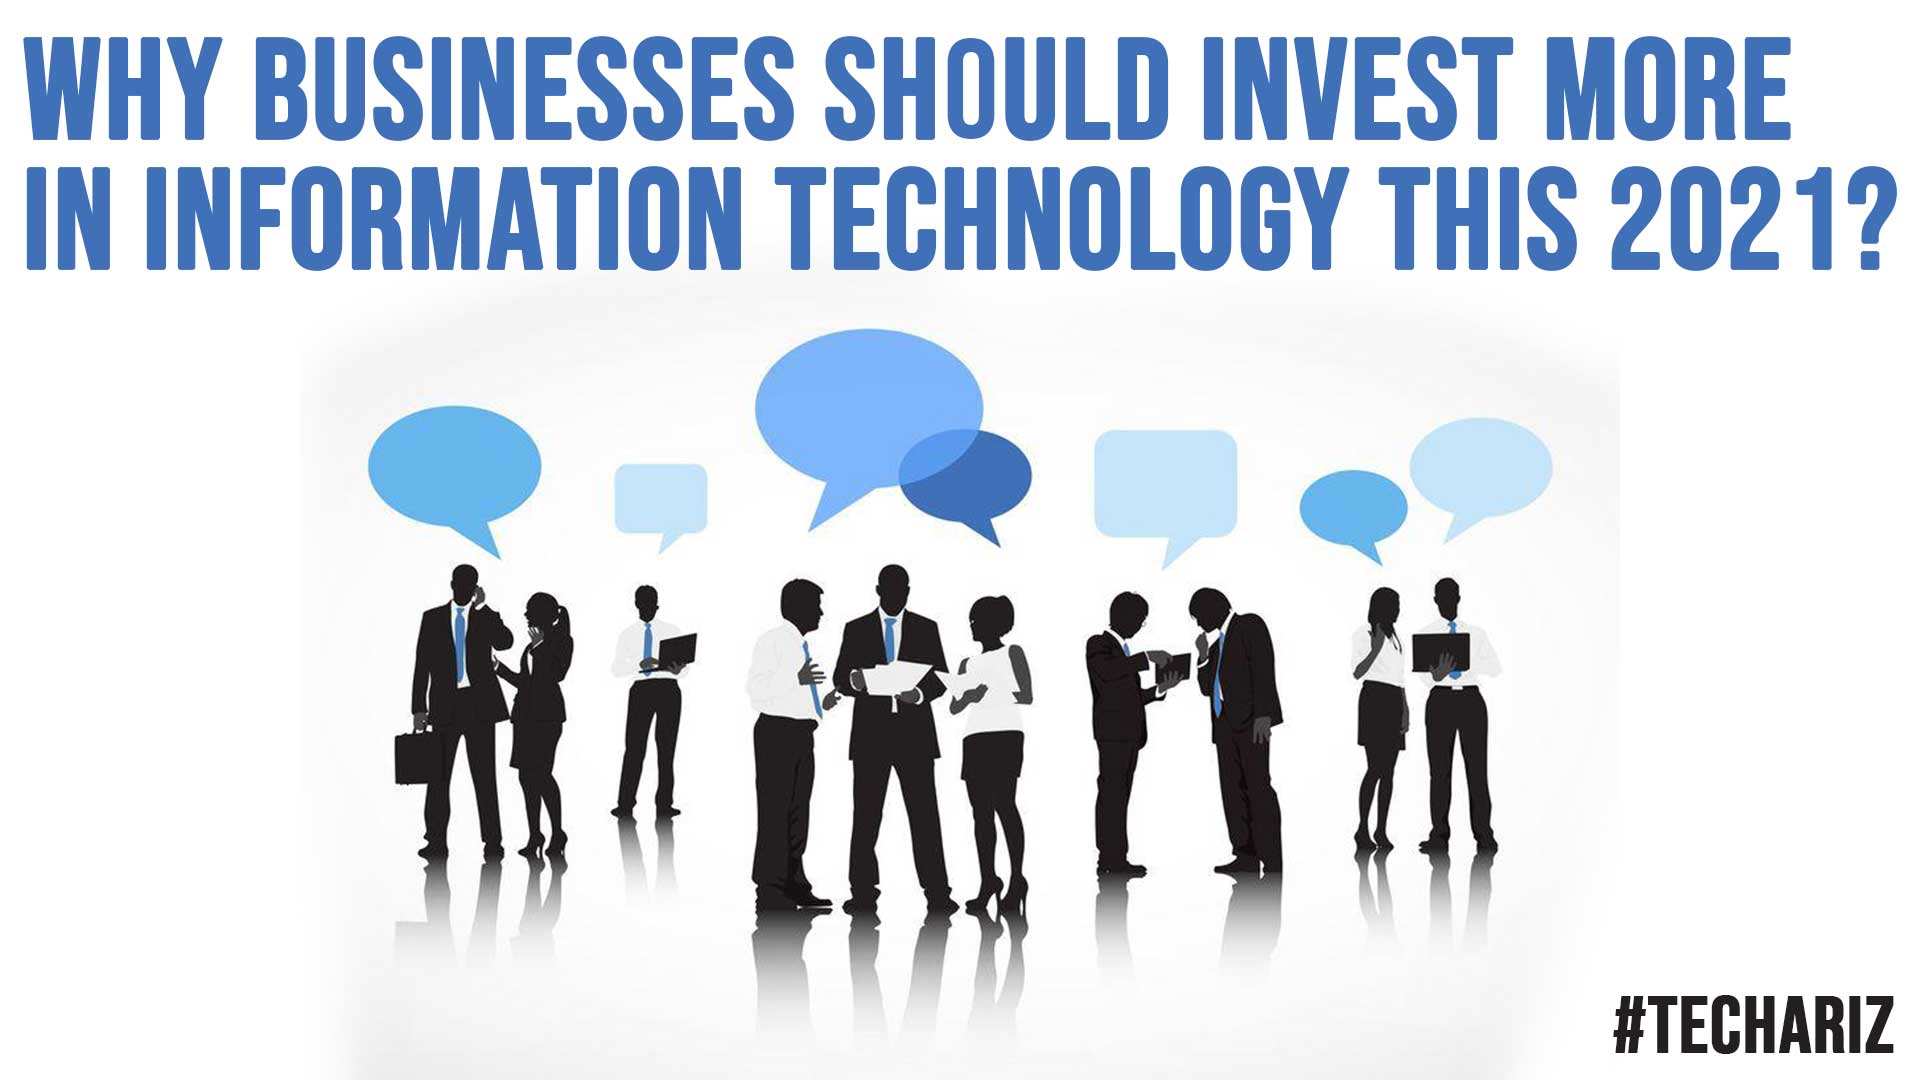 Why Businesses Should Invest More In Information Technology This 2021